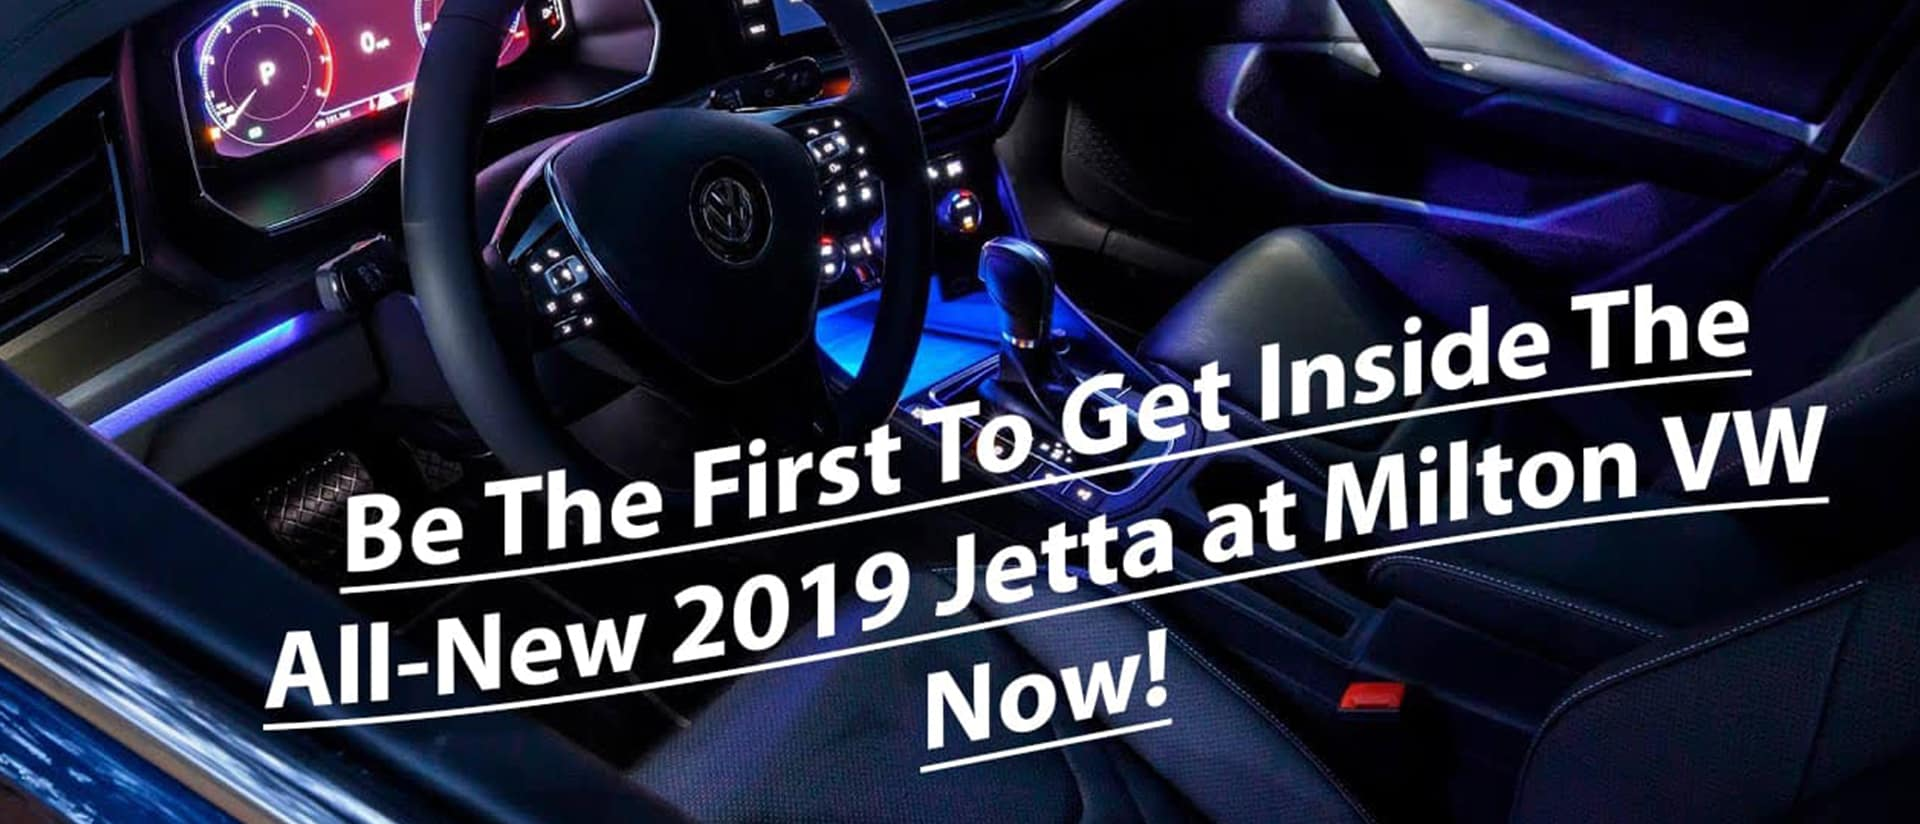 Milton VW All New 2019 Jetta